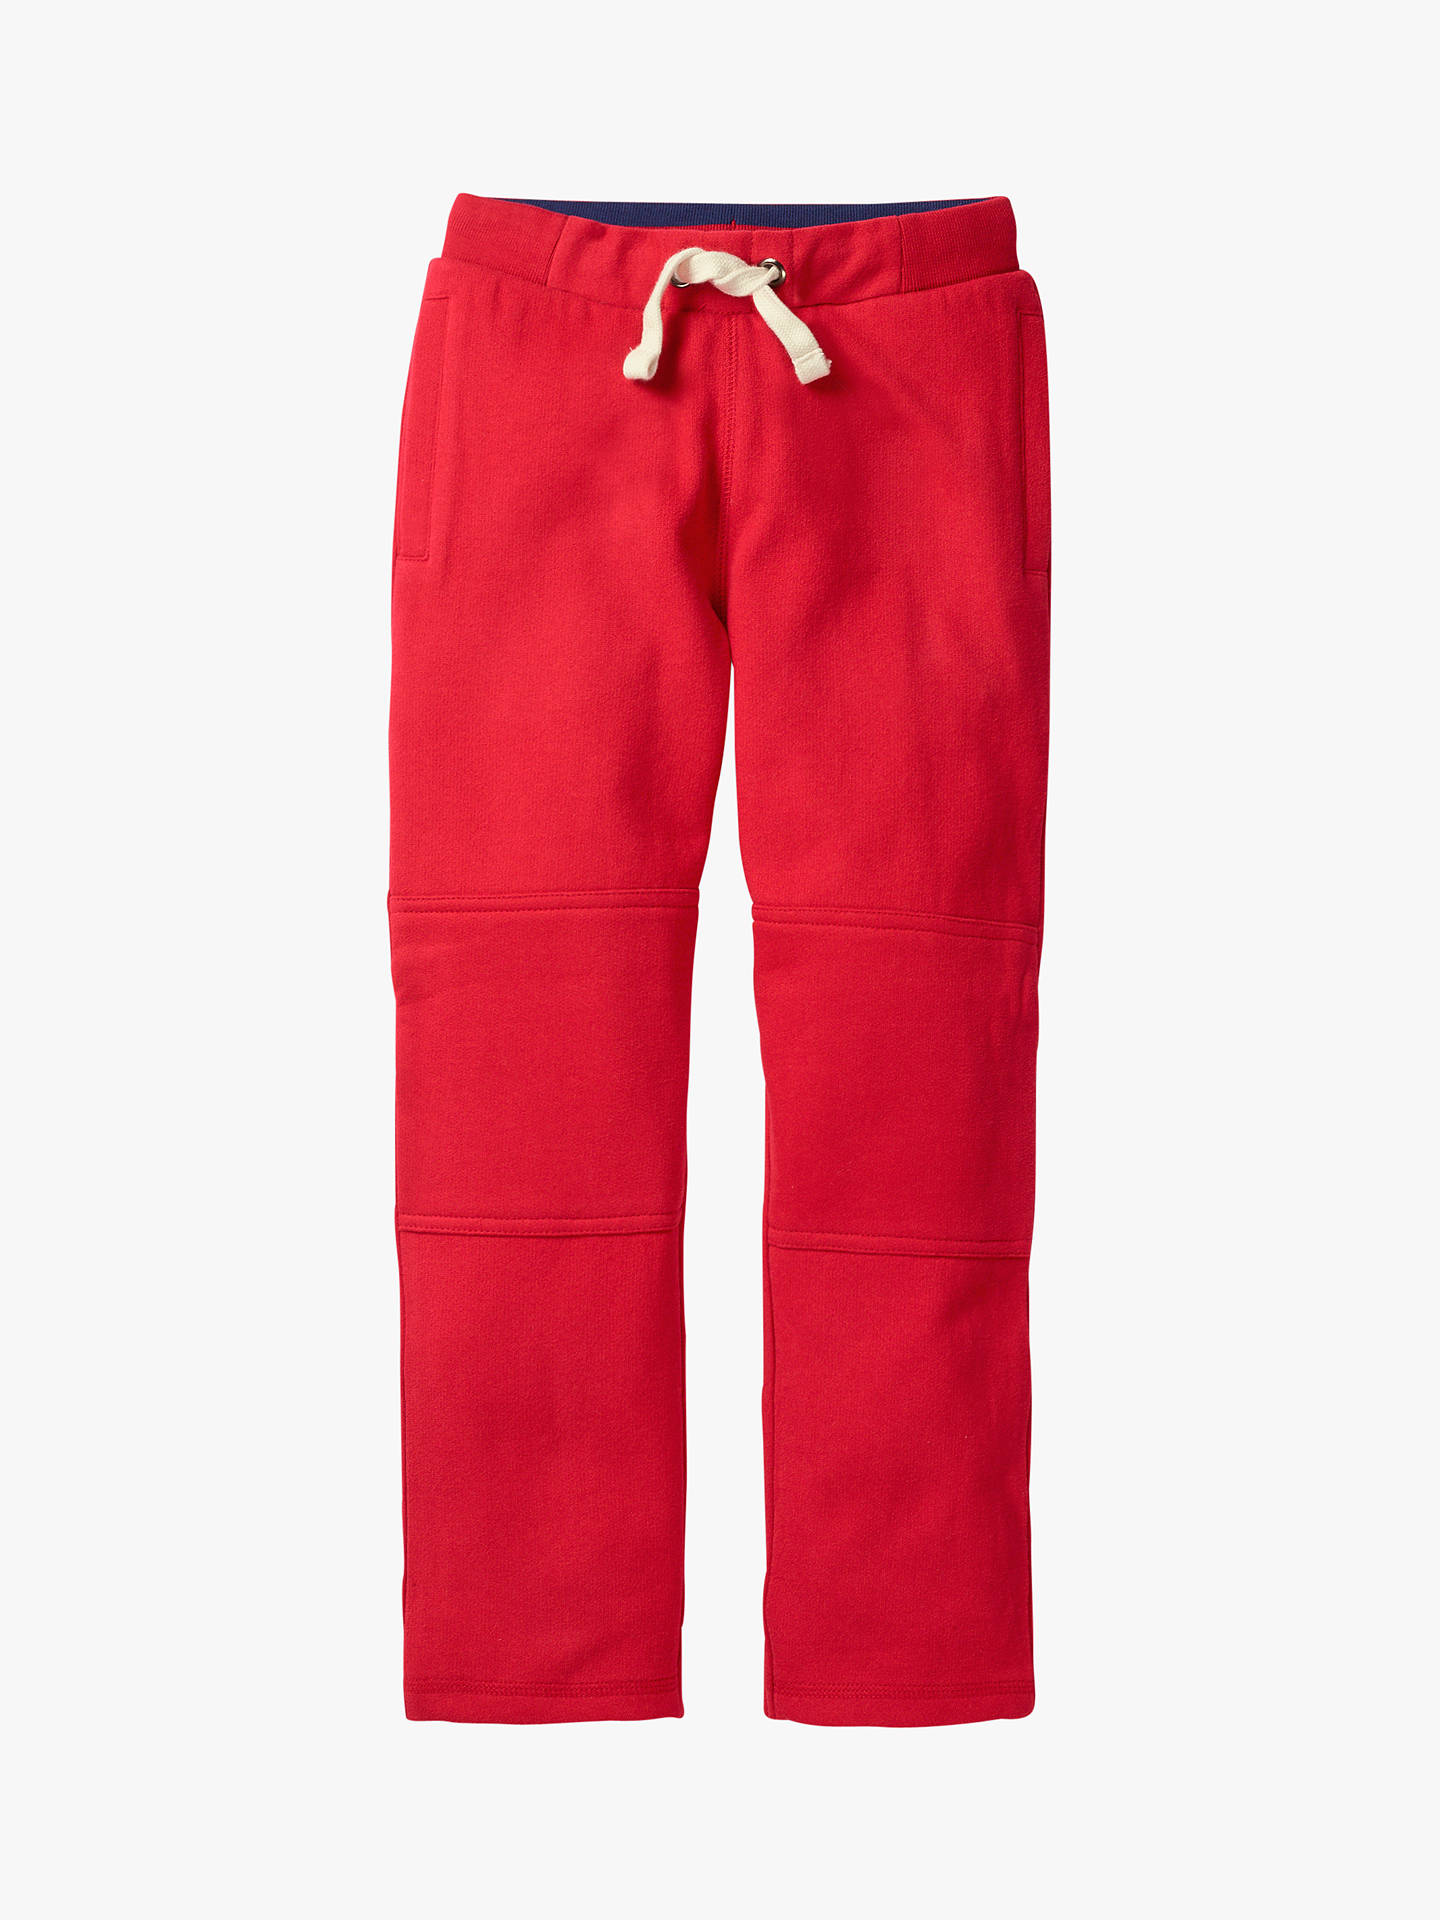 4460643f6 Buy Mini Boden Boys' Joggers, Engine Red, 12 years Online at johnlewis.